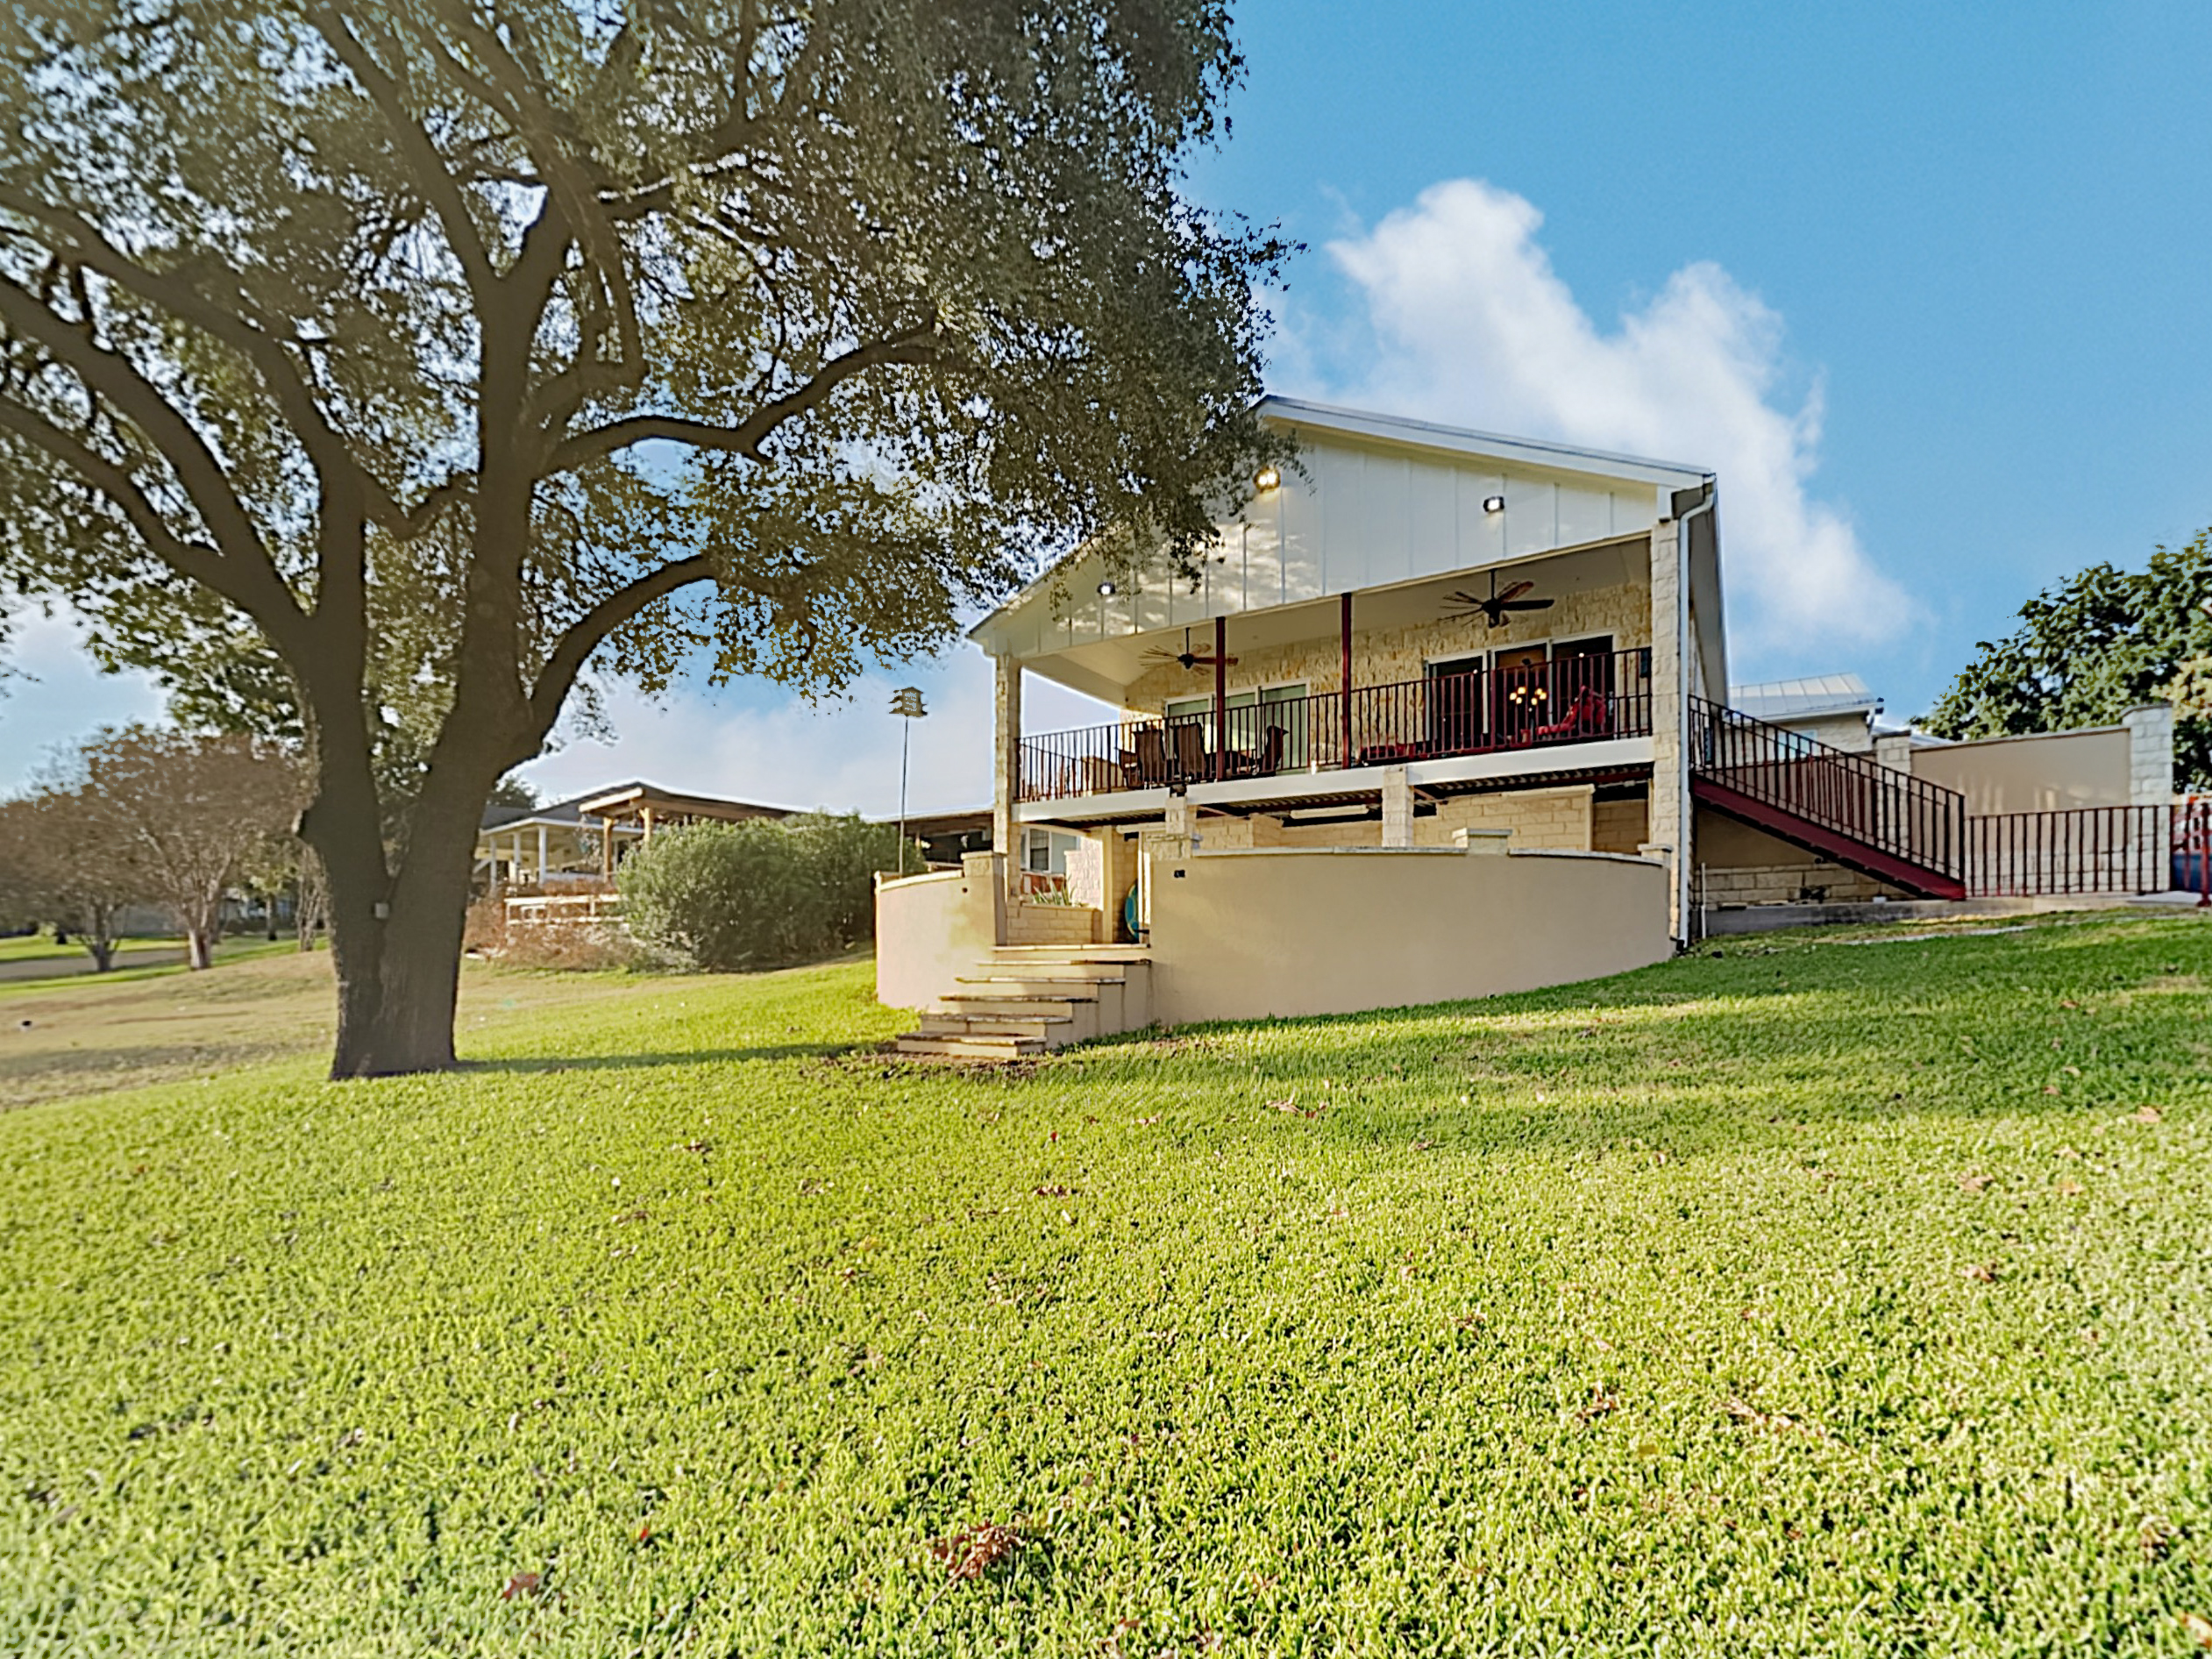 Kingsland TX Vacation Rental Welcome to the